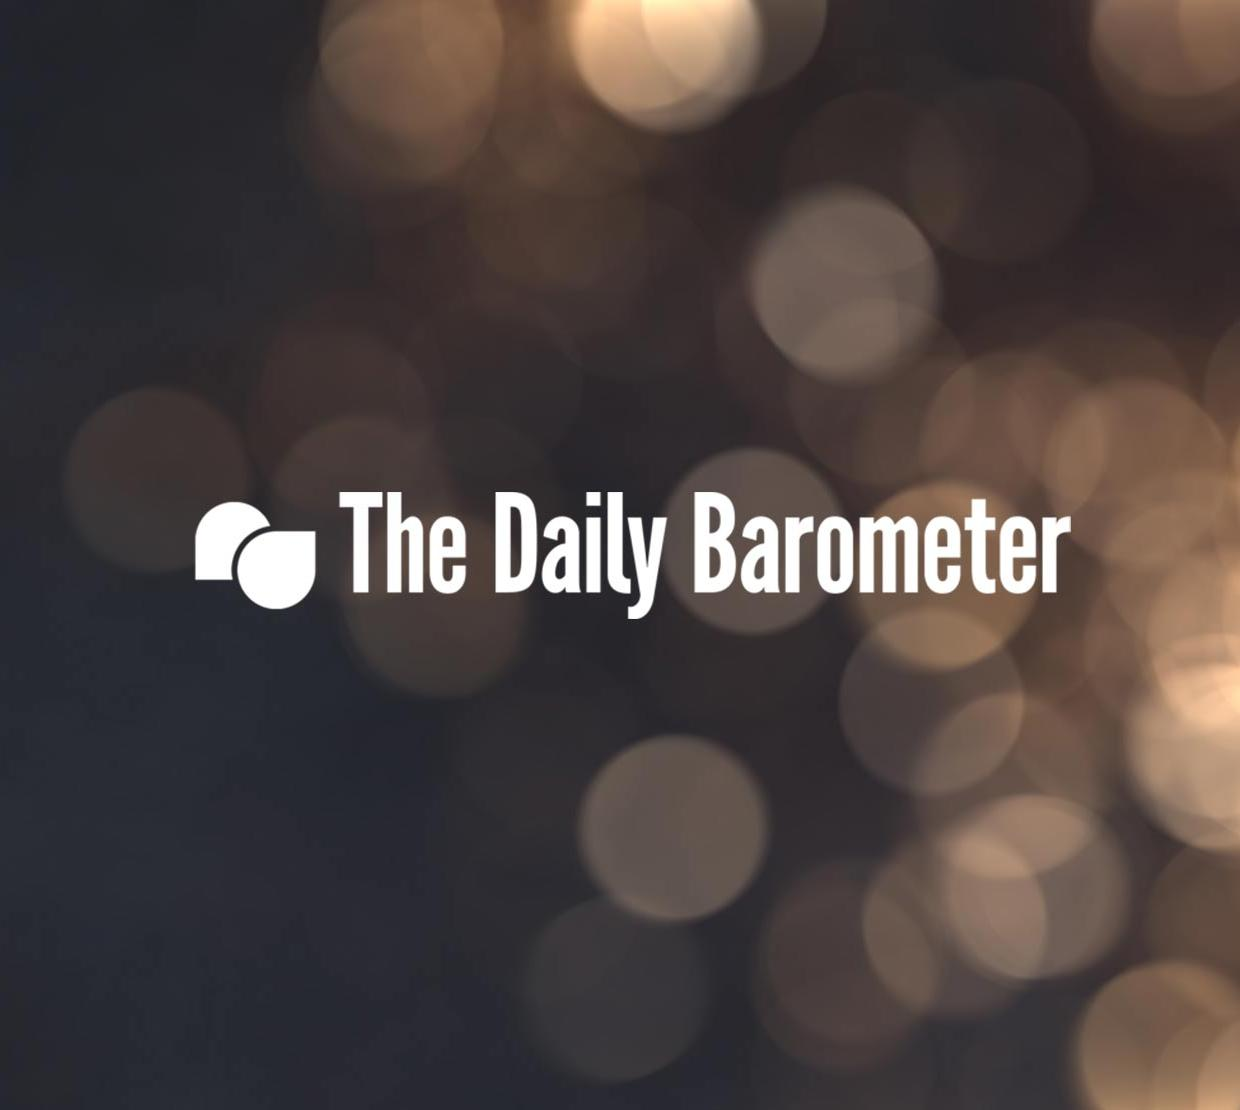 The Barometer logo above brown light texture